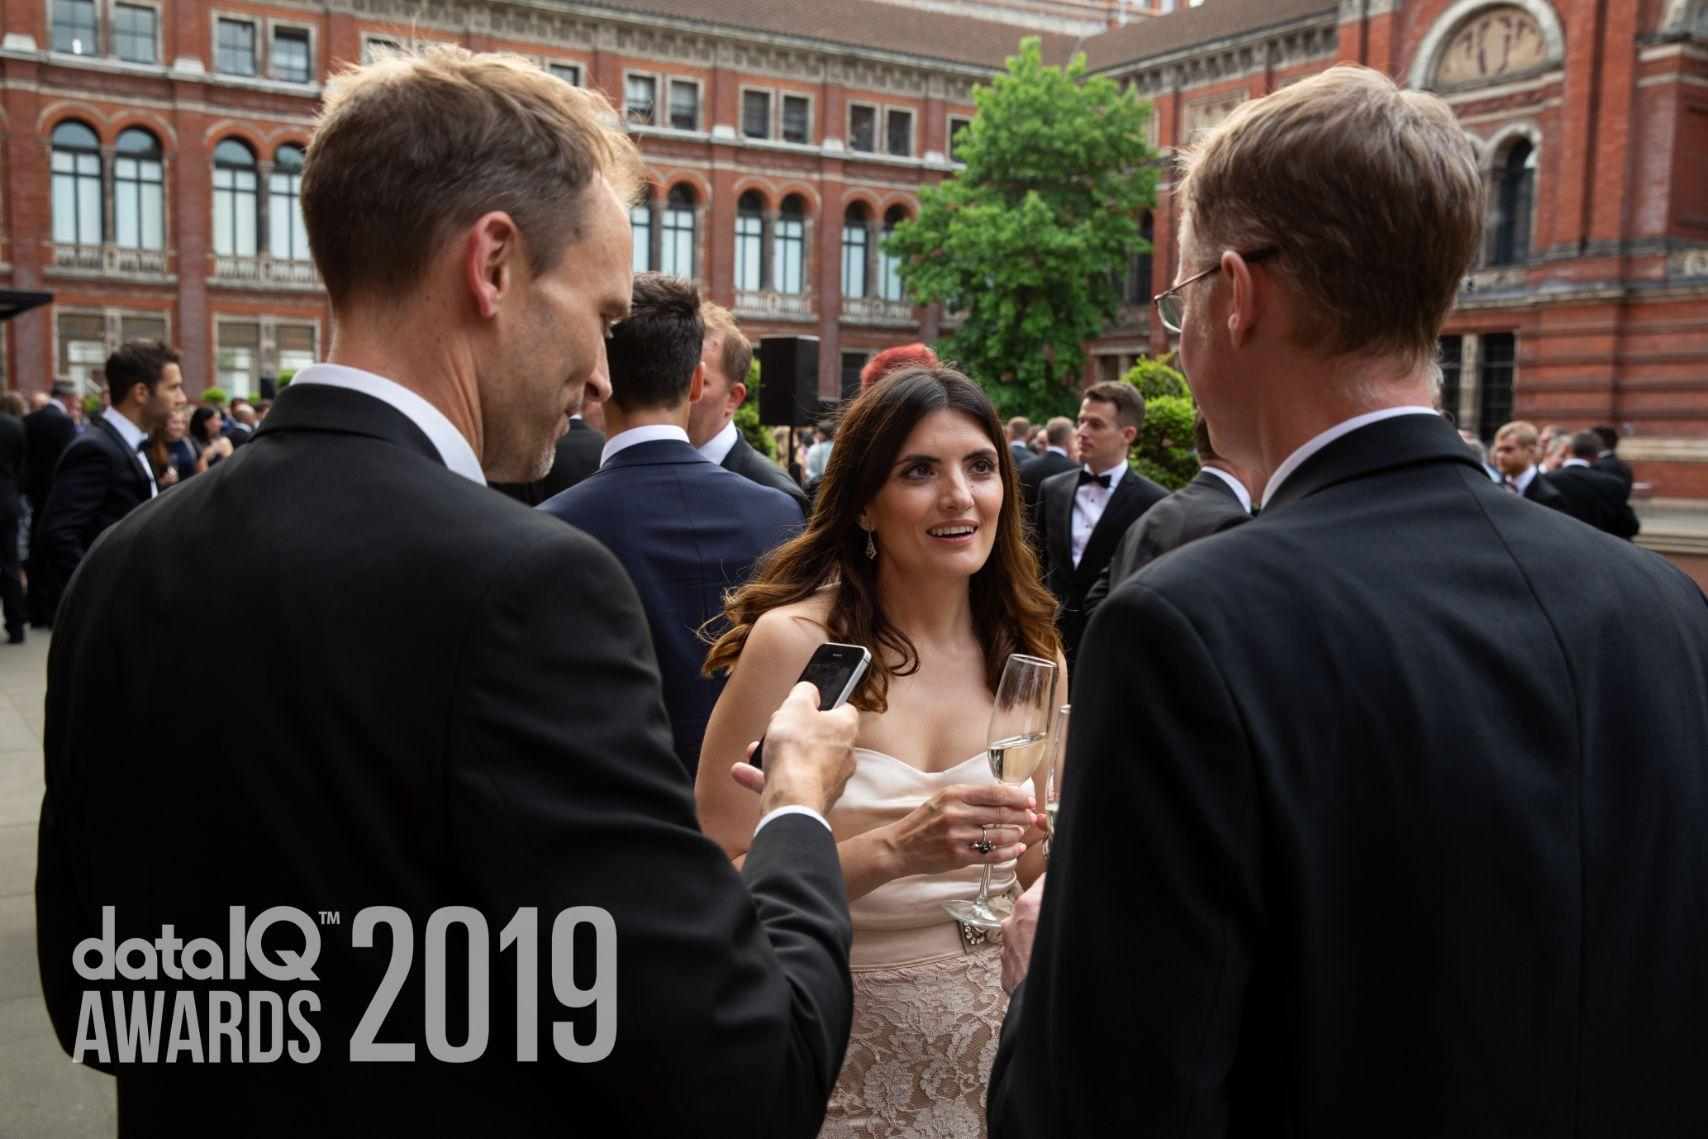 Awards 2019 Image 123